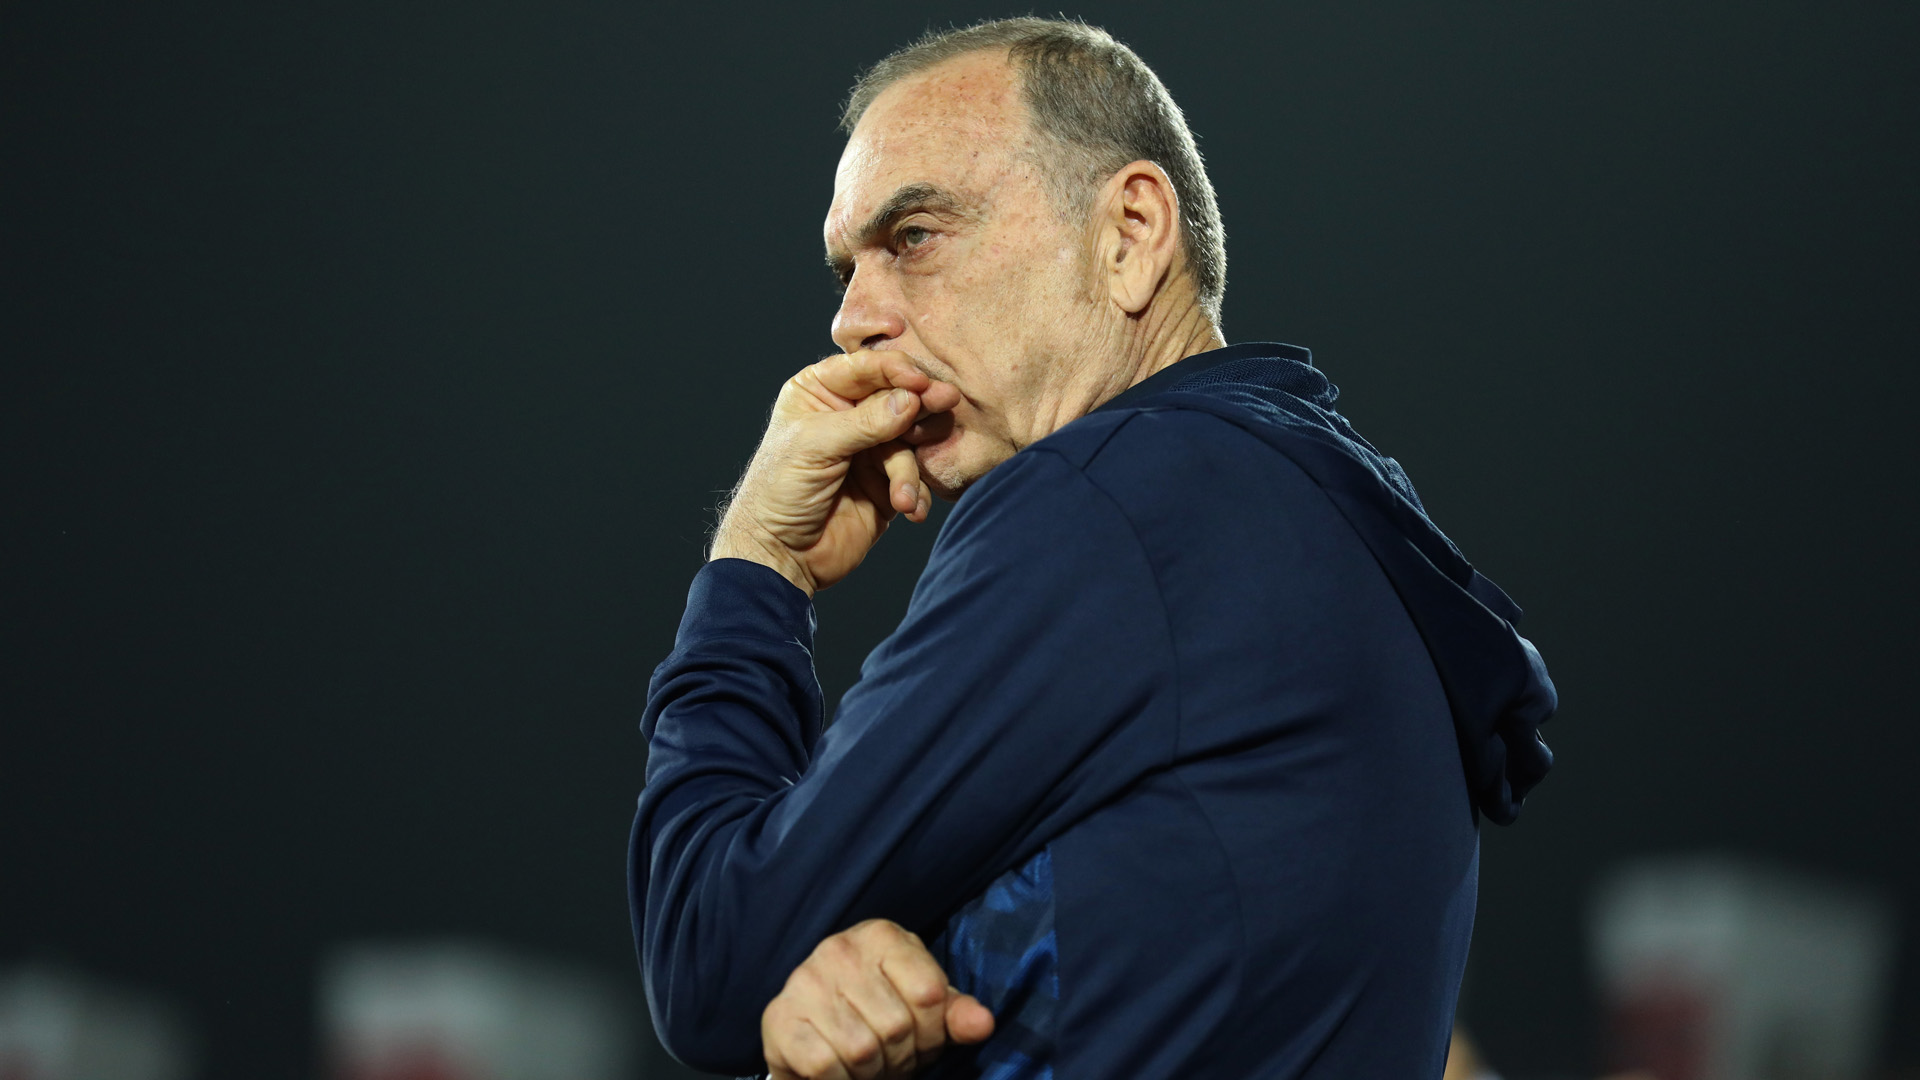 Avram Grant NorthEast United FC FC Goa ISL 4 2017/2018